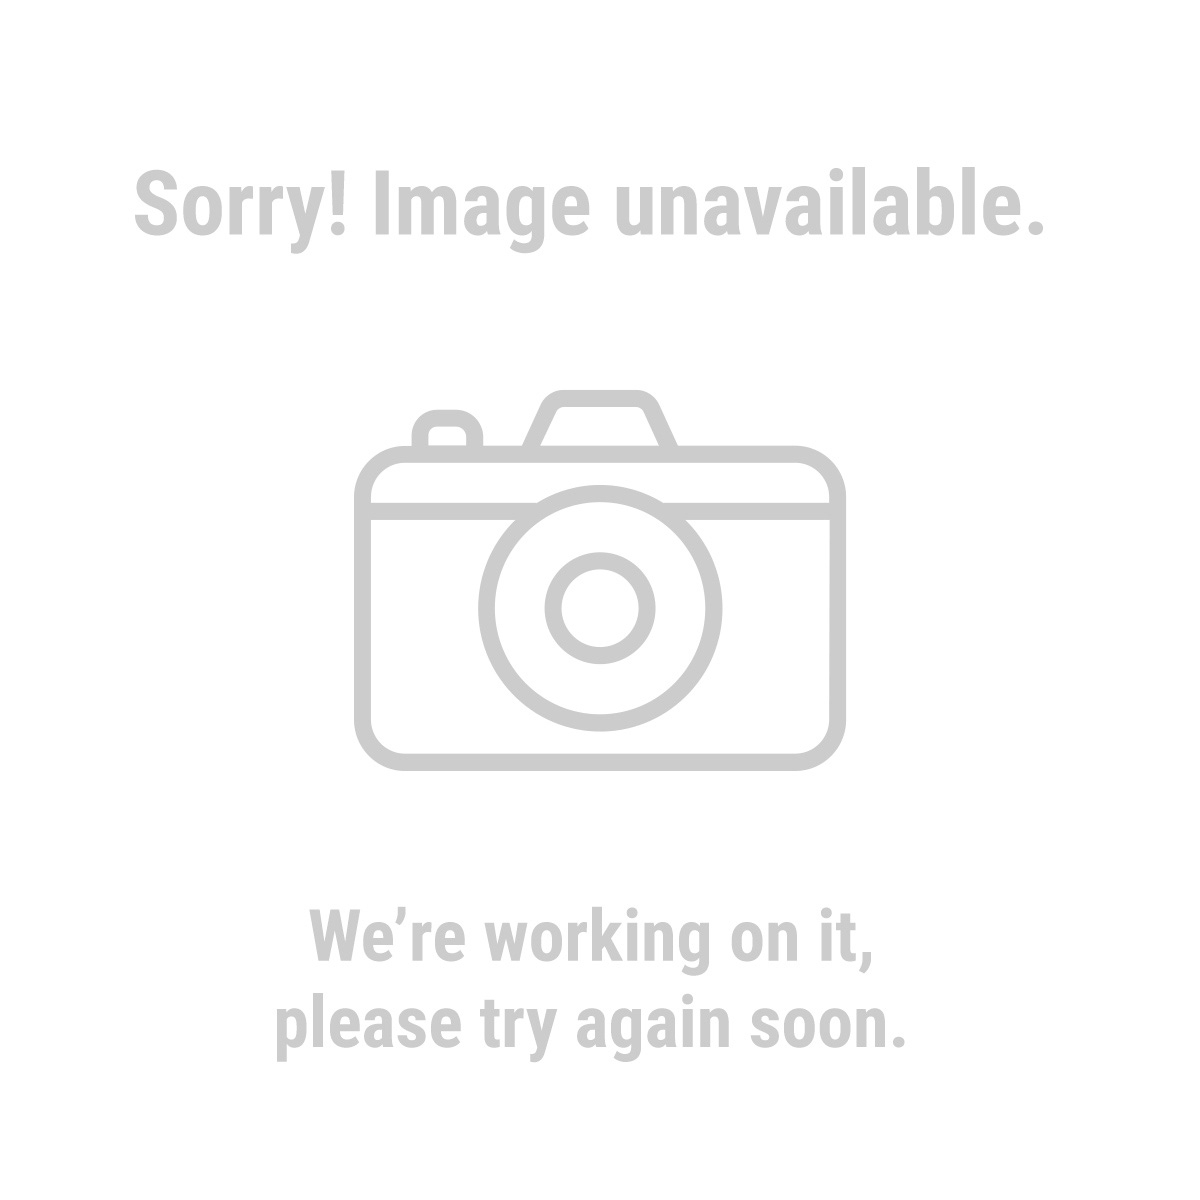 Performix 97066 CLEAR LIQUID TAPE SPRAY